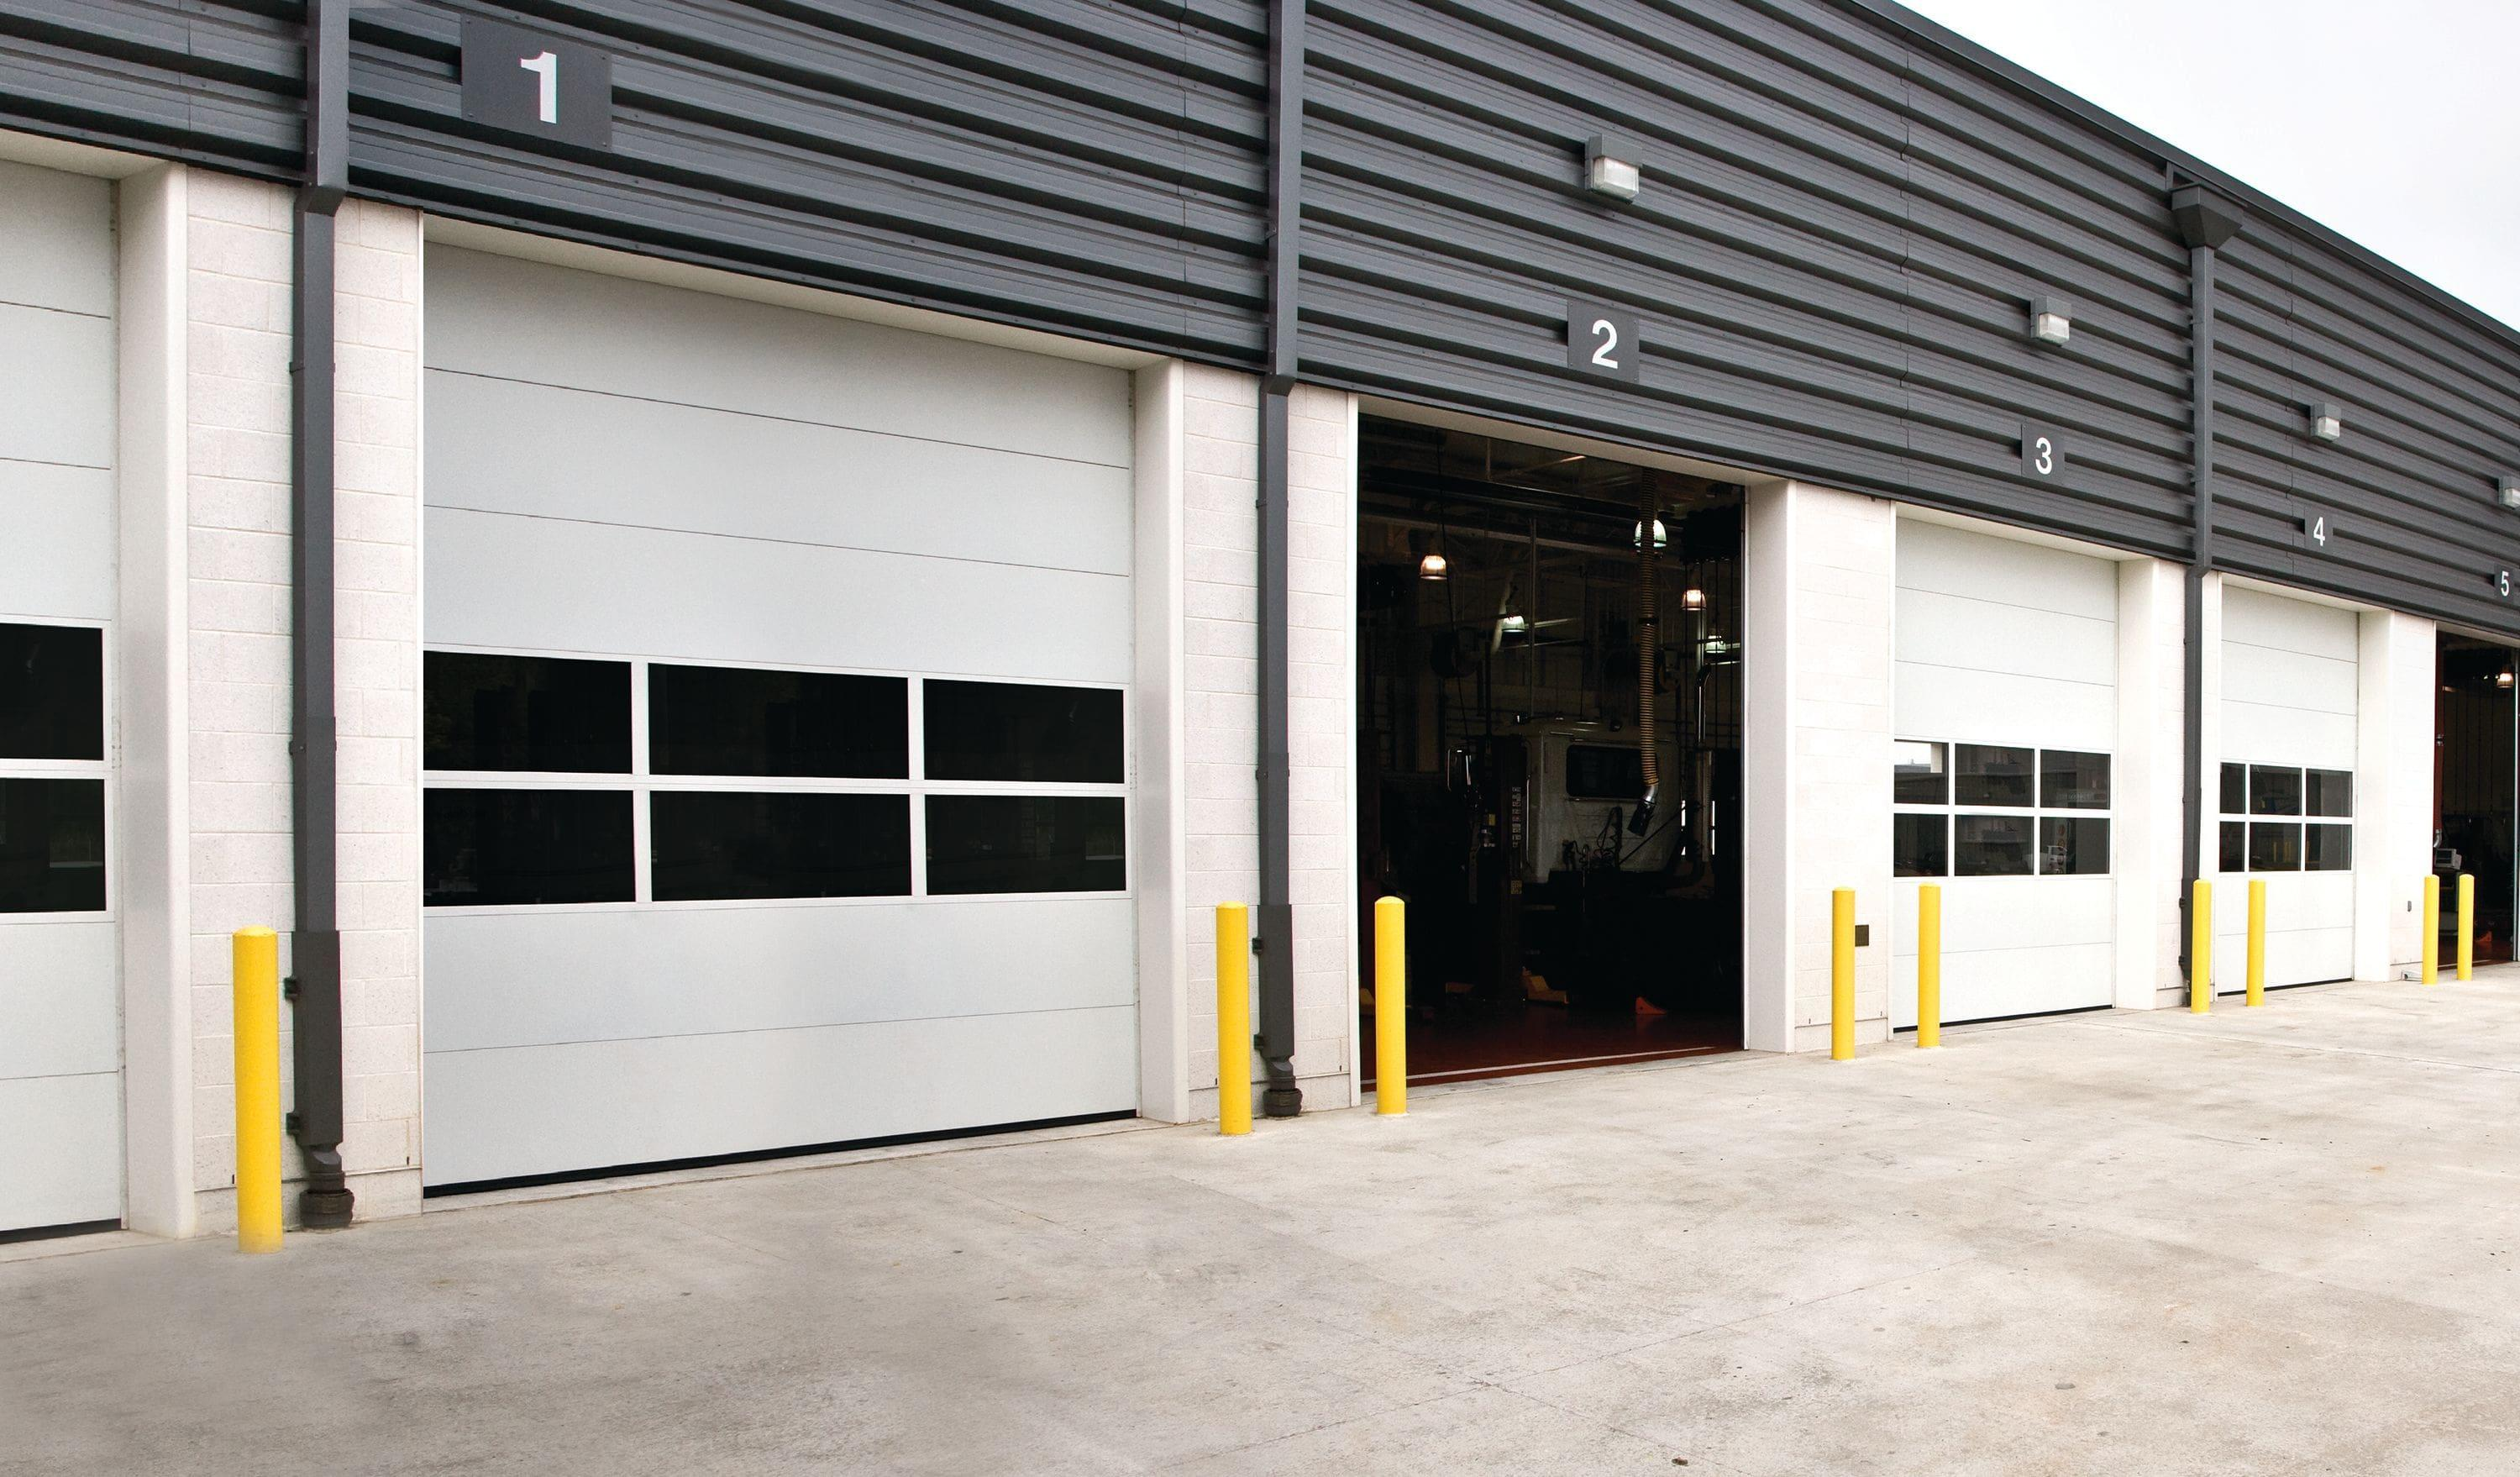 exterior of commercial building with row of overhead doors